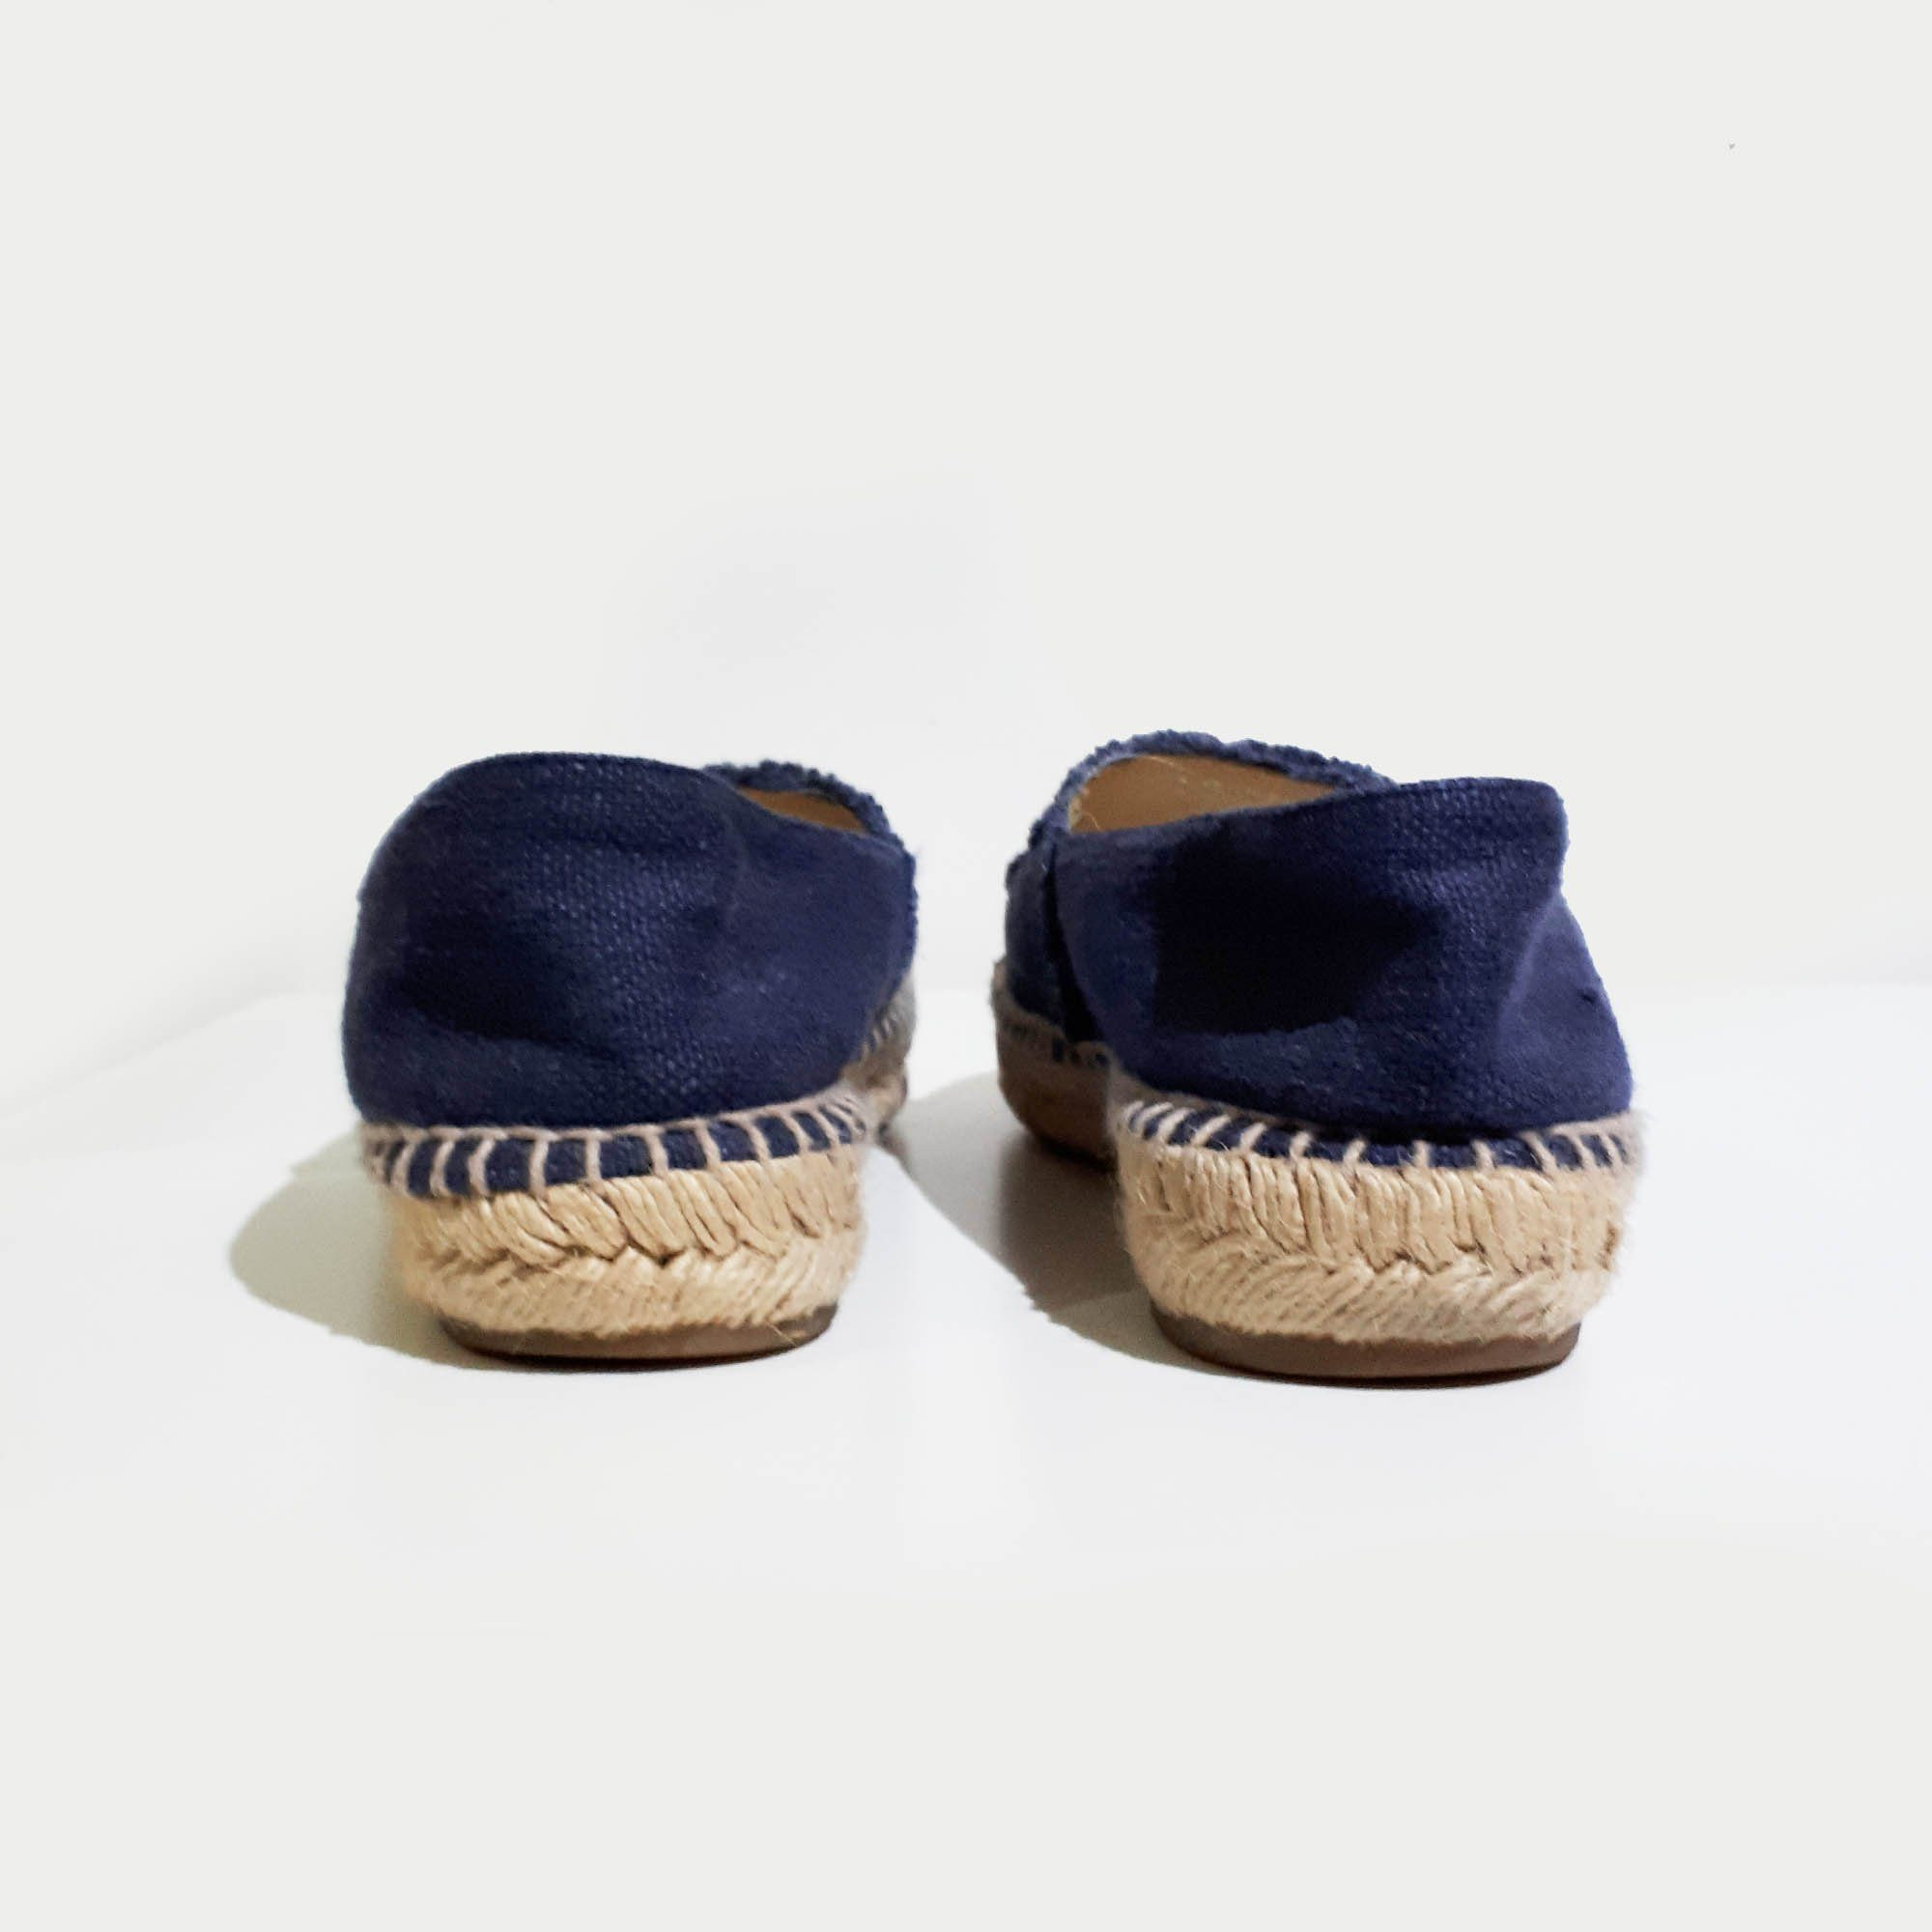 Chanel Blue Fabric CC Espadrille Flats